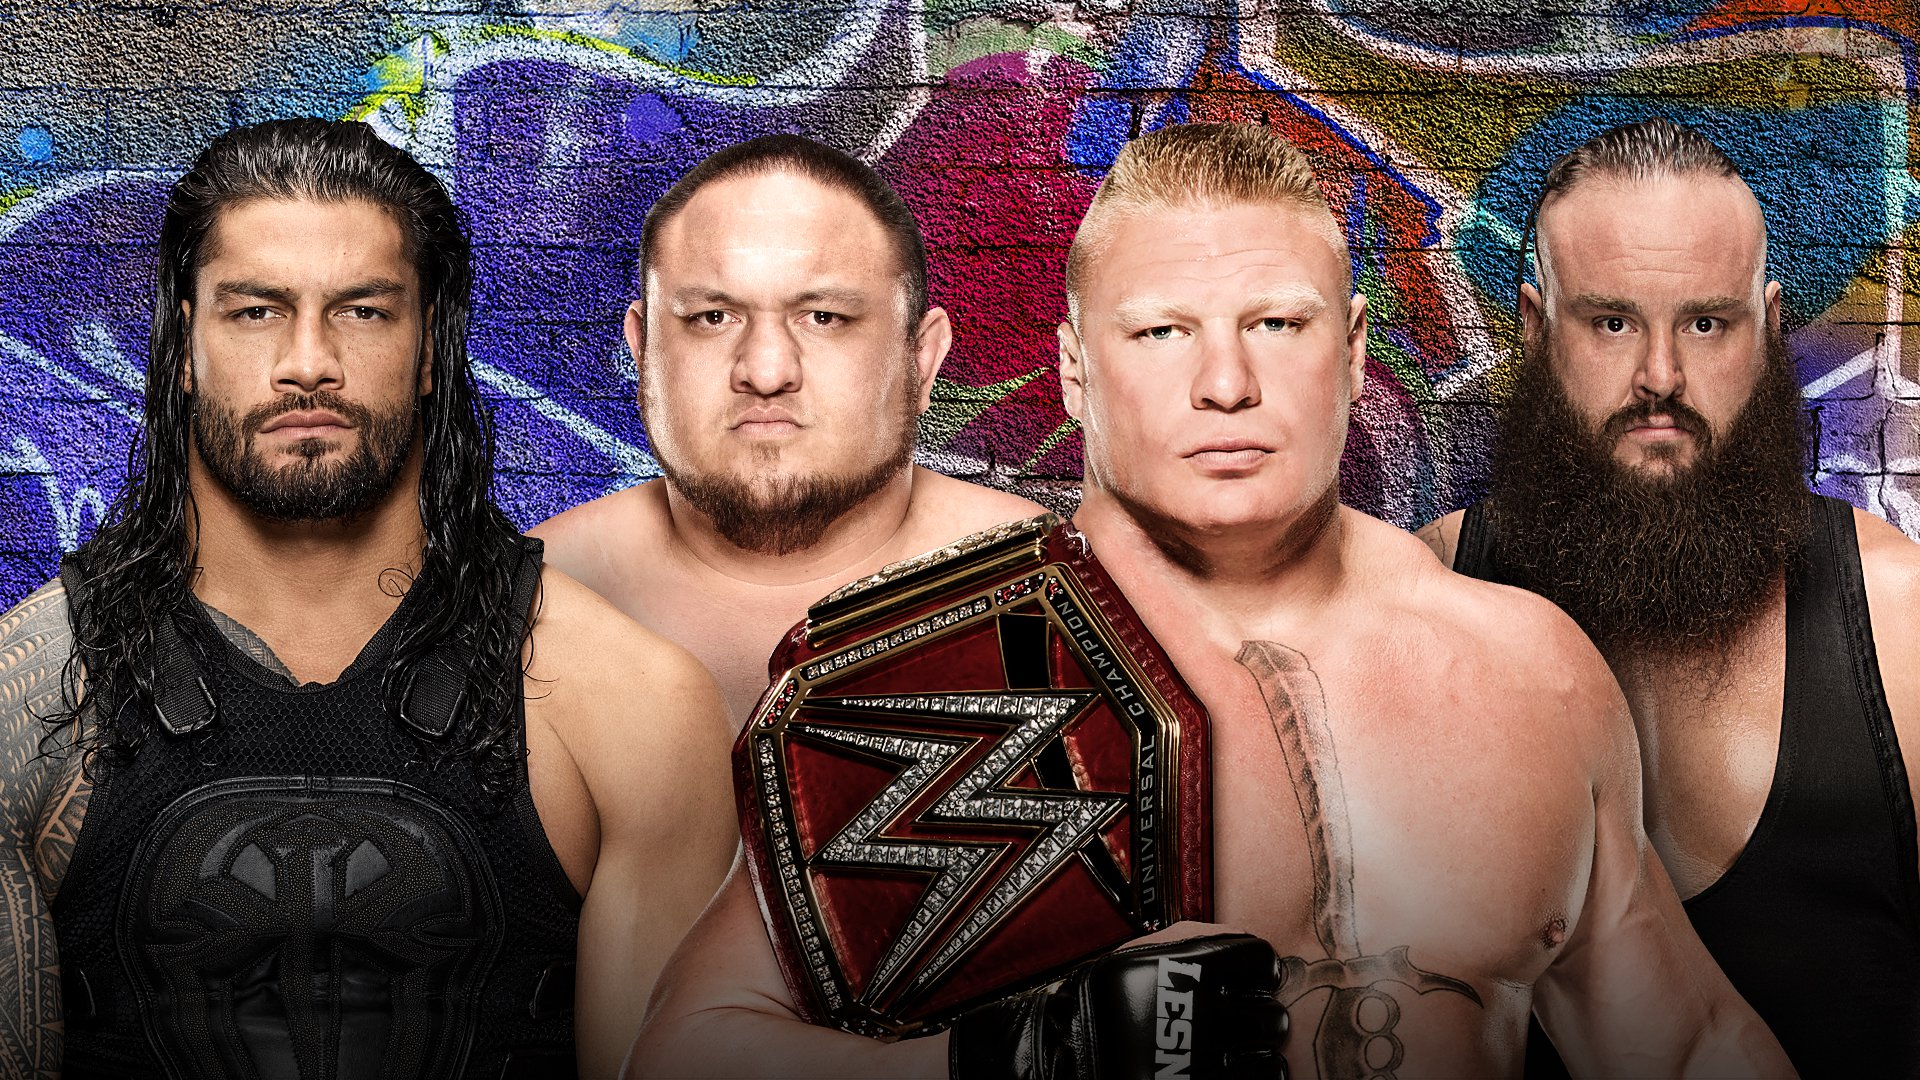 WWE SummerSlam 2017: Roman Reigns vs. Samoa Joe vs. Brock Lesnar vs. Braun Strowman